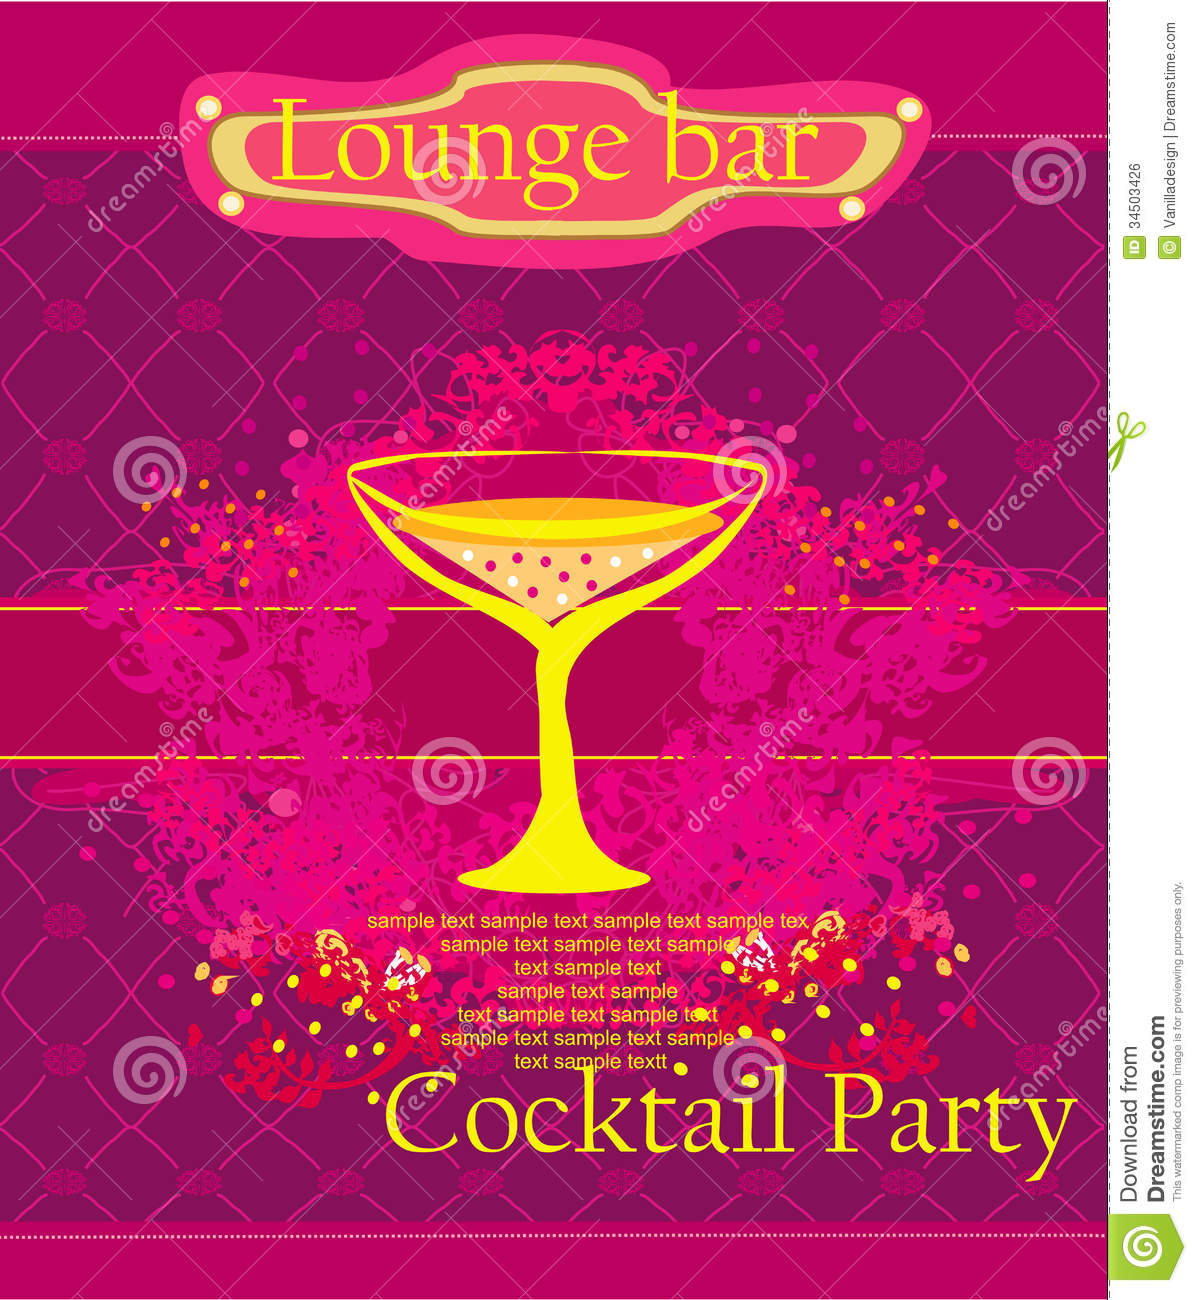 Cocktail Party Invitation Card Royalty Free Image Image – Cocktail Party Invitations Templates Free